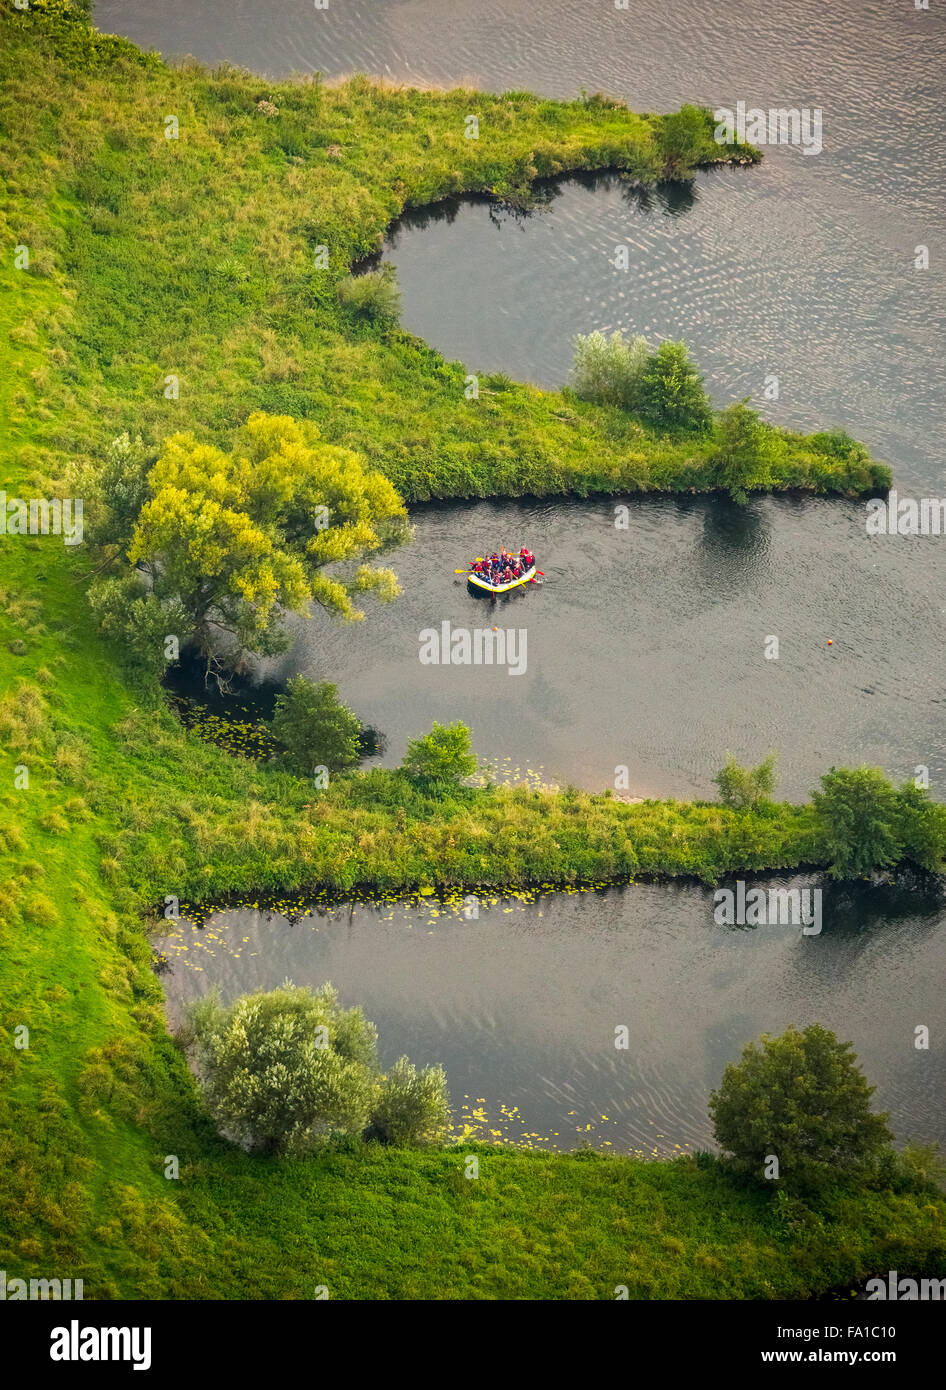 Paddling on the Ruhr between the protected natural breakwaters, Hattingen, Ruhr, Nordrhein-Westfalen, Germany, Europe, - Stock Image